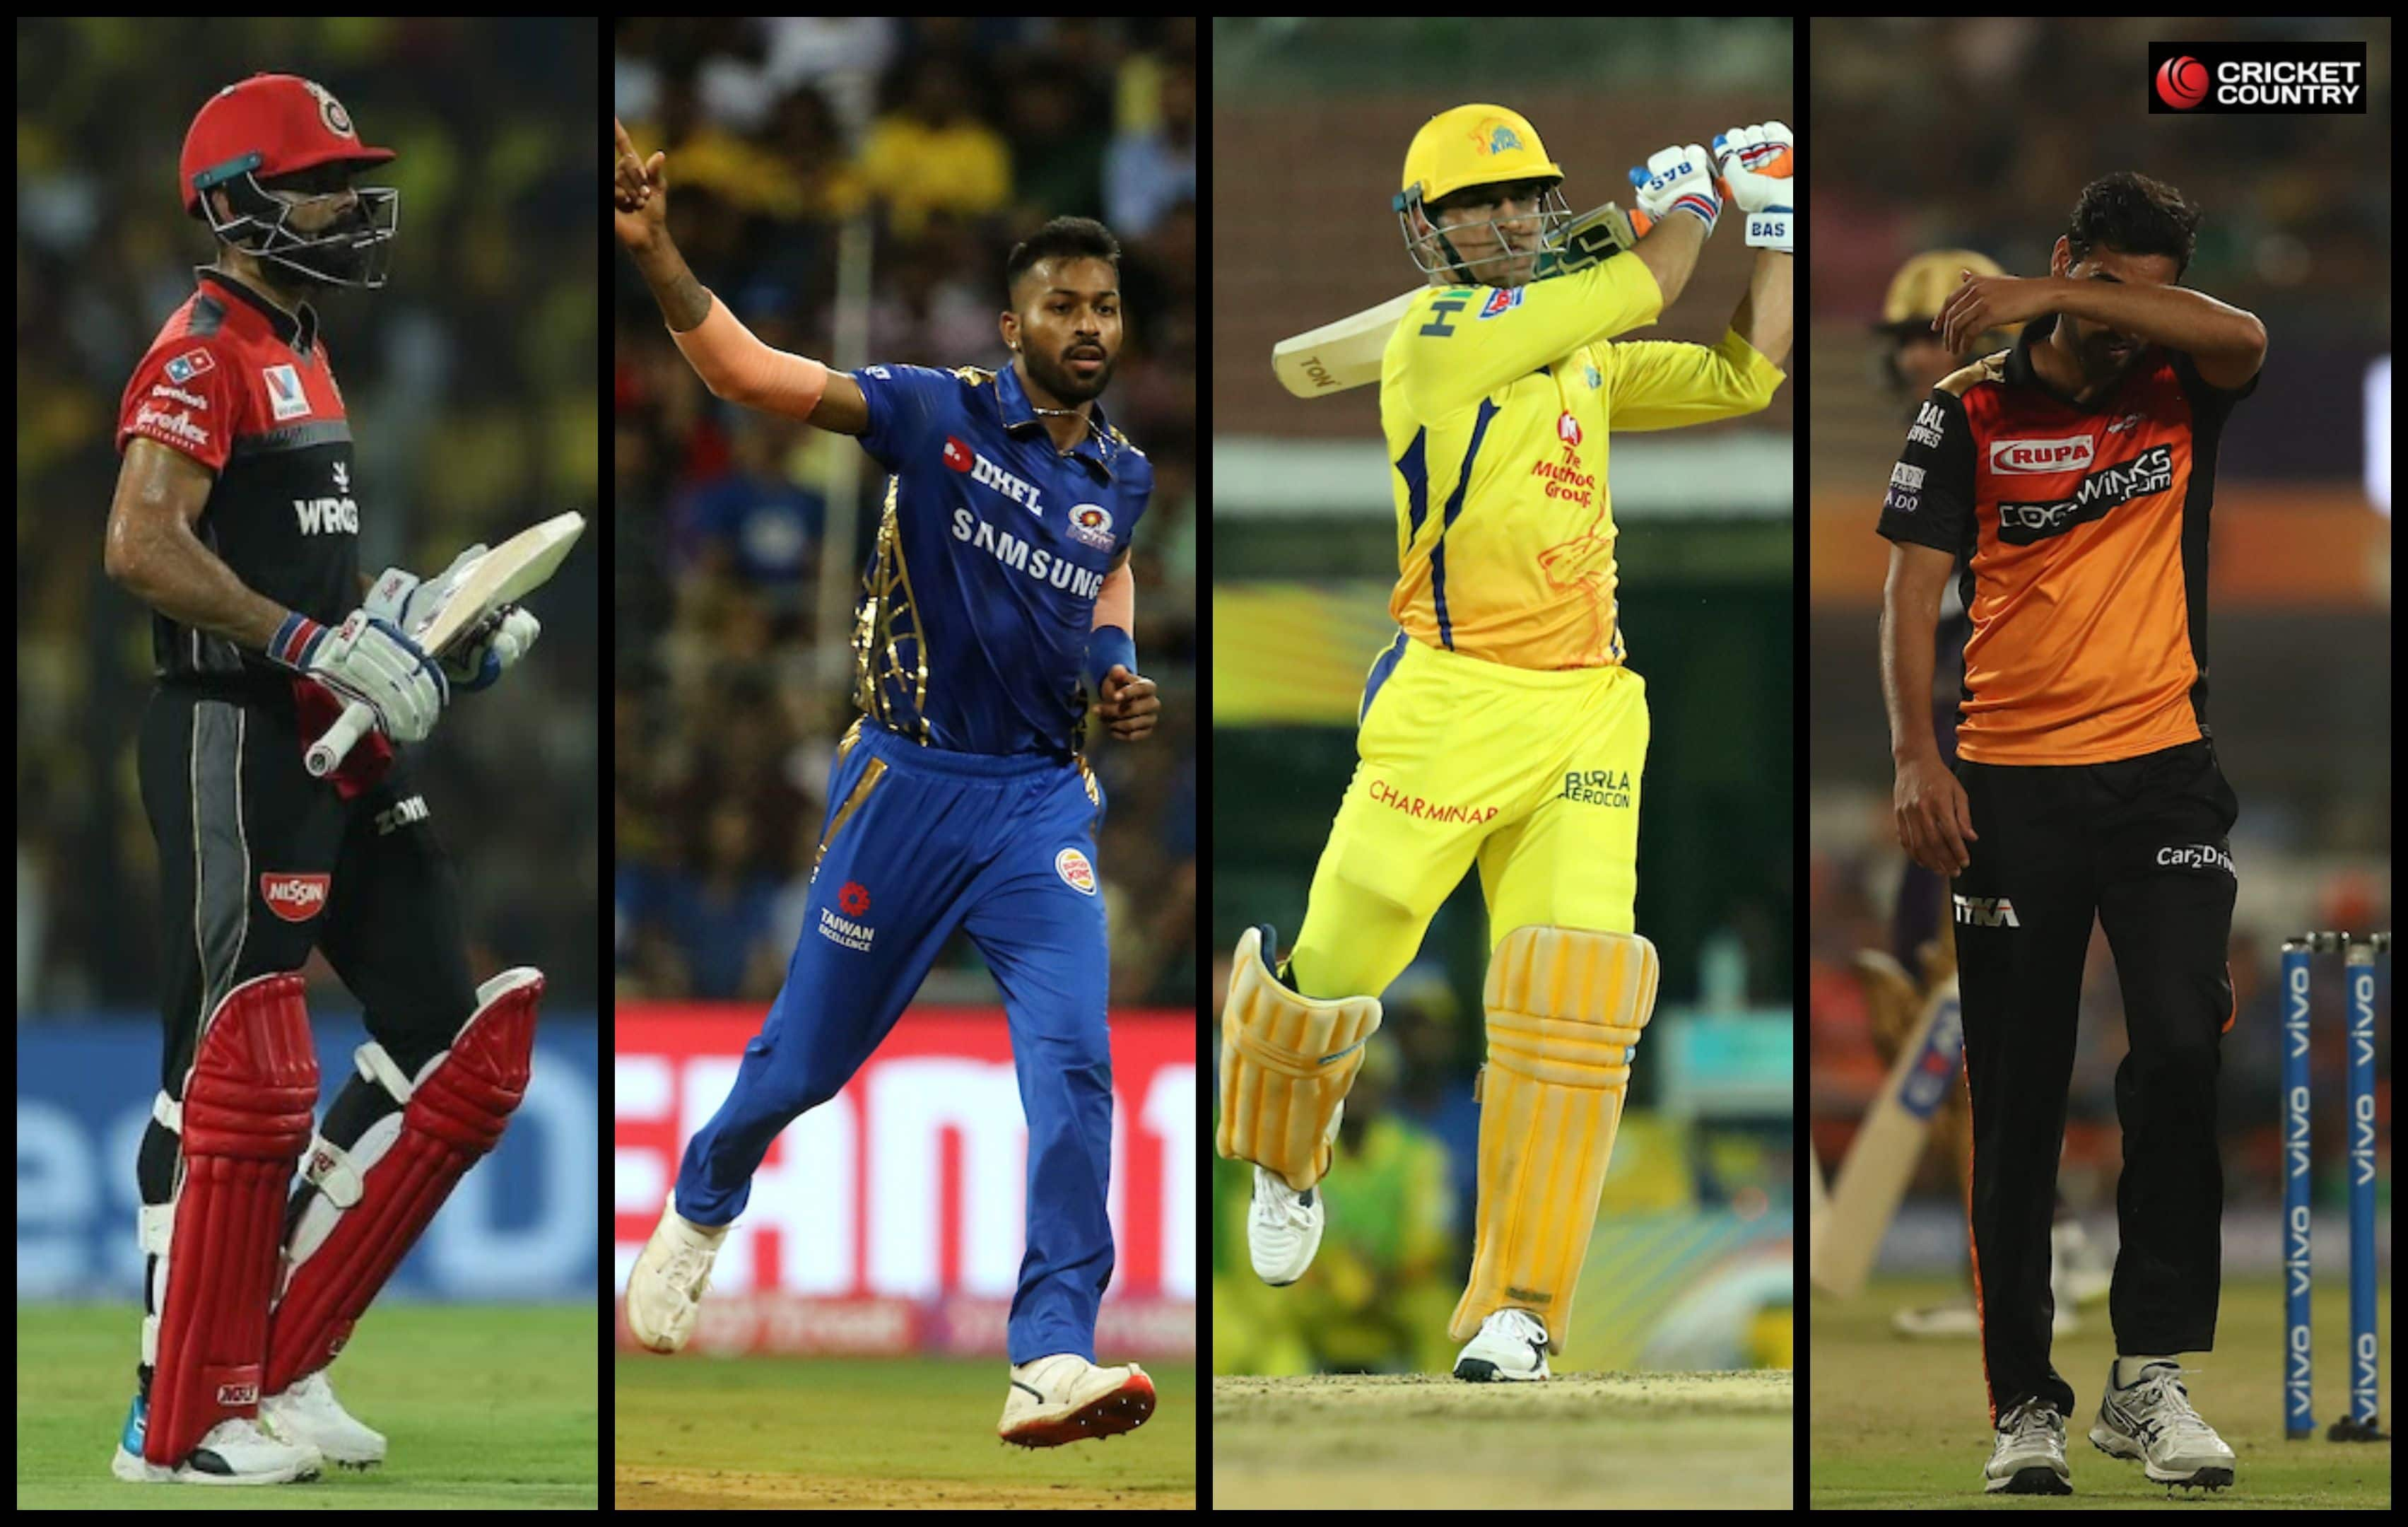 IPL 2019: How have India's World Cup probables fared?